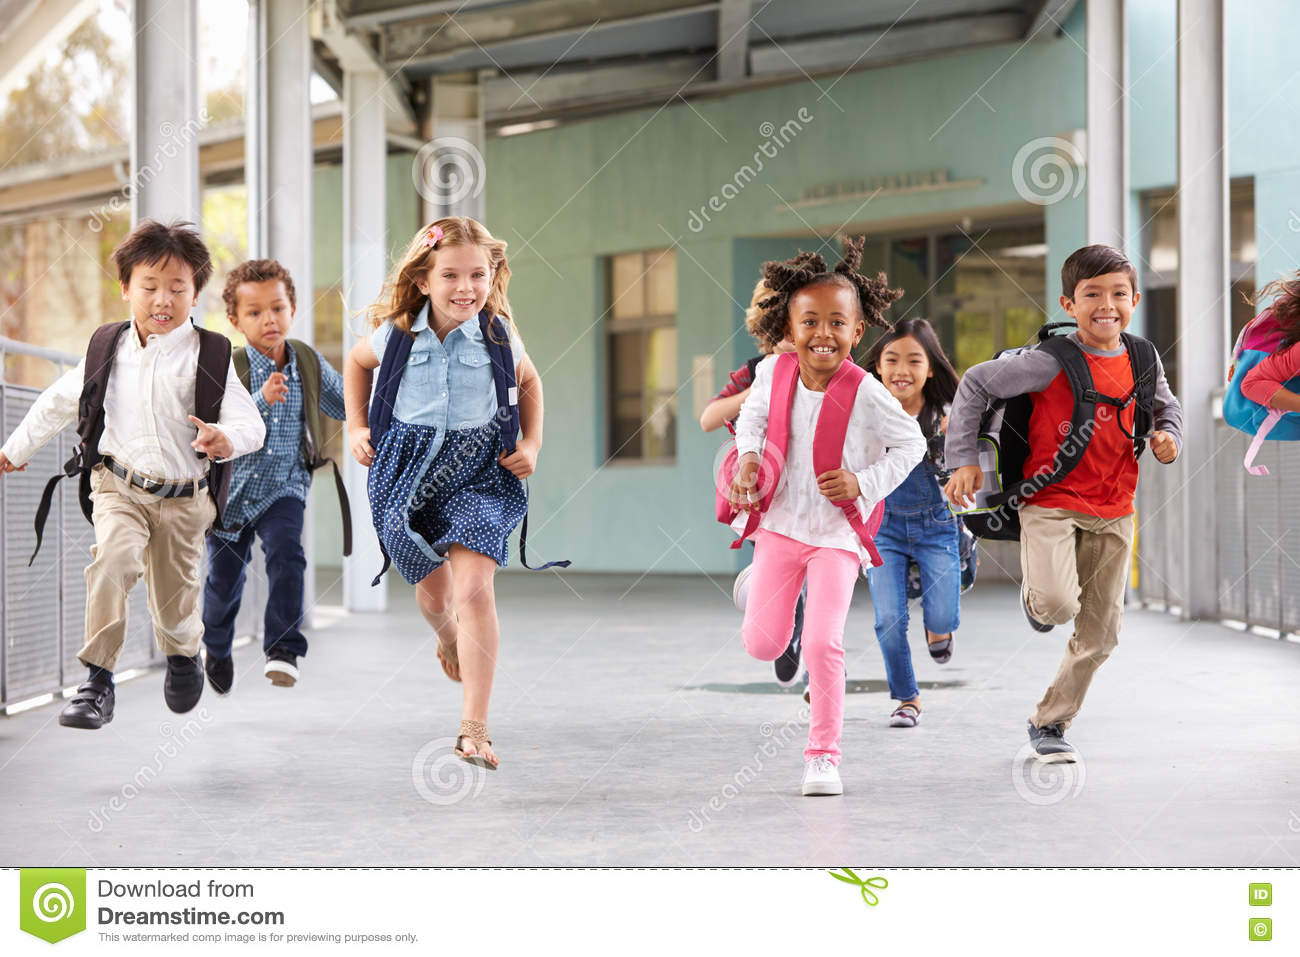 3ae7b46c874 Group Of Elementary School Kids Running In A School Corridor Stock ...